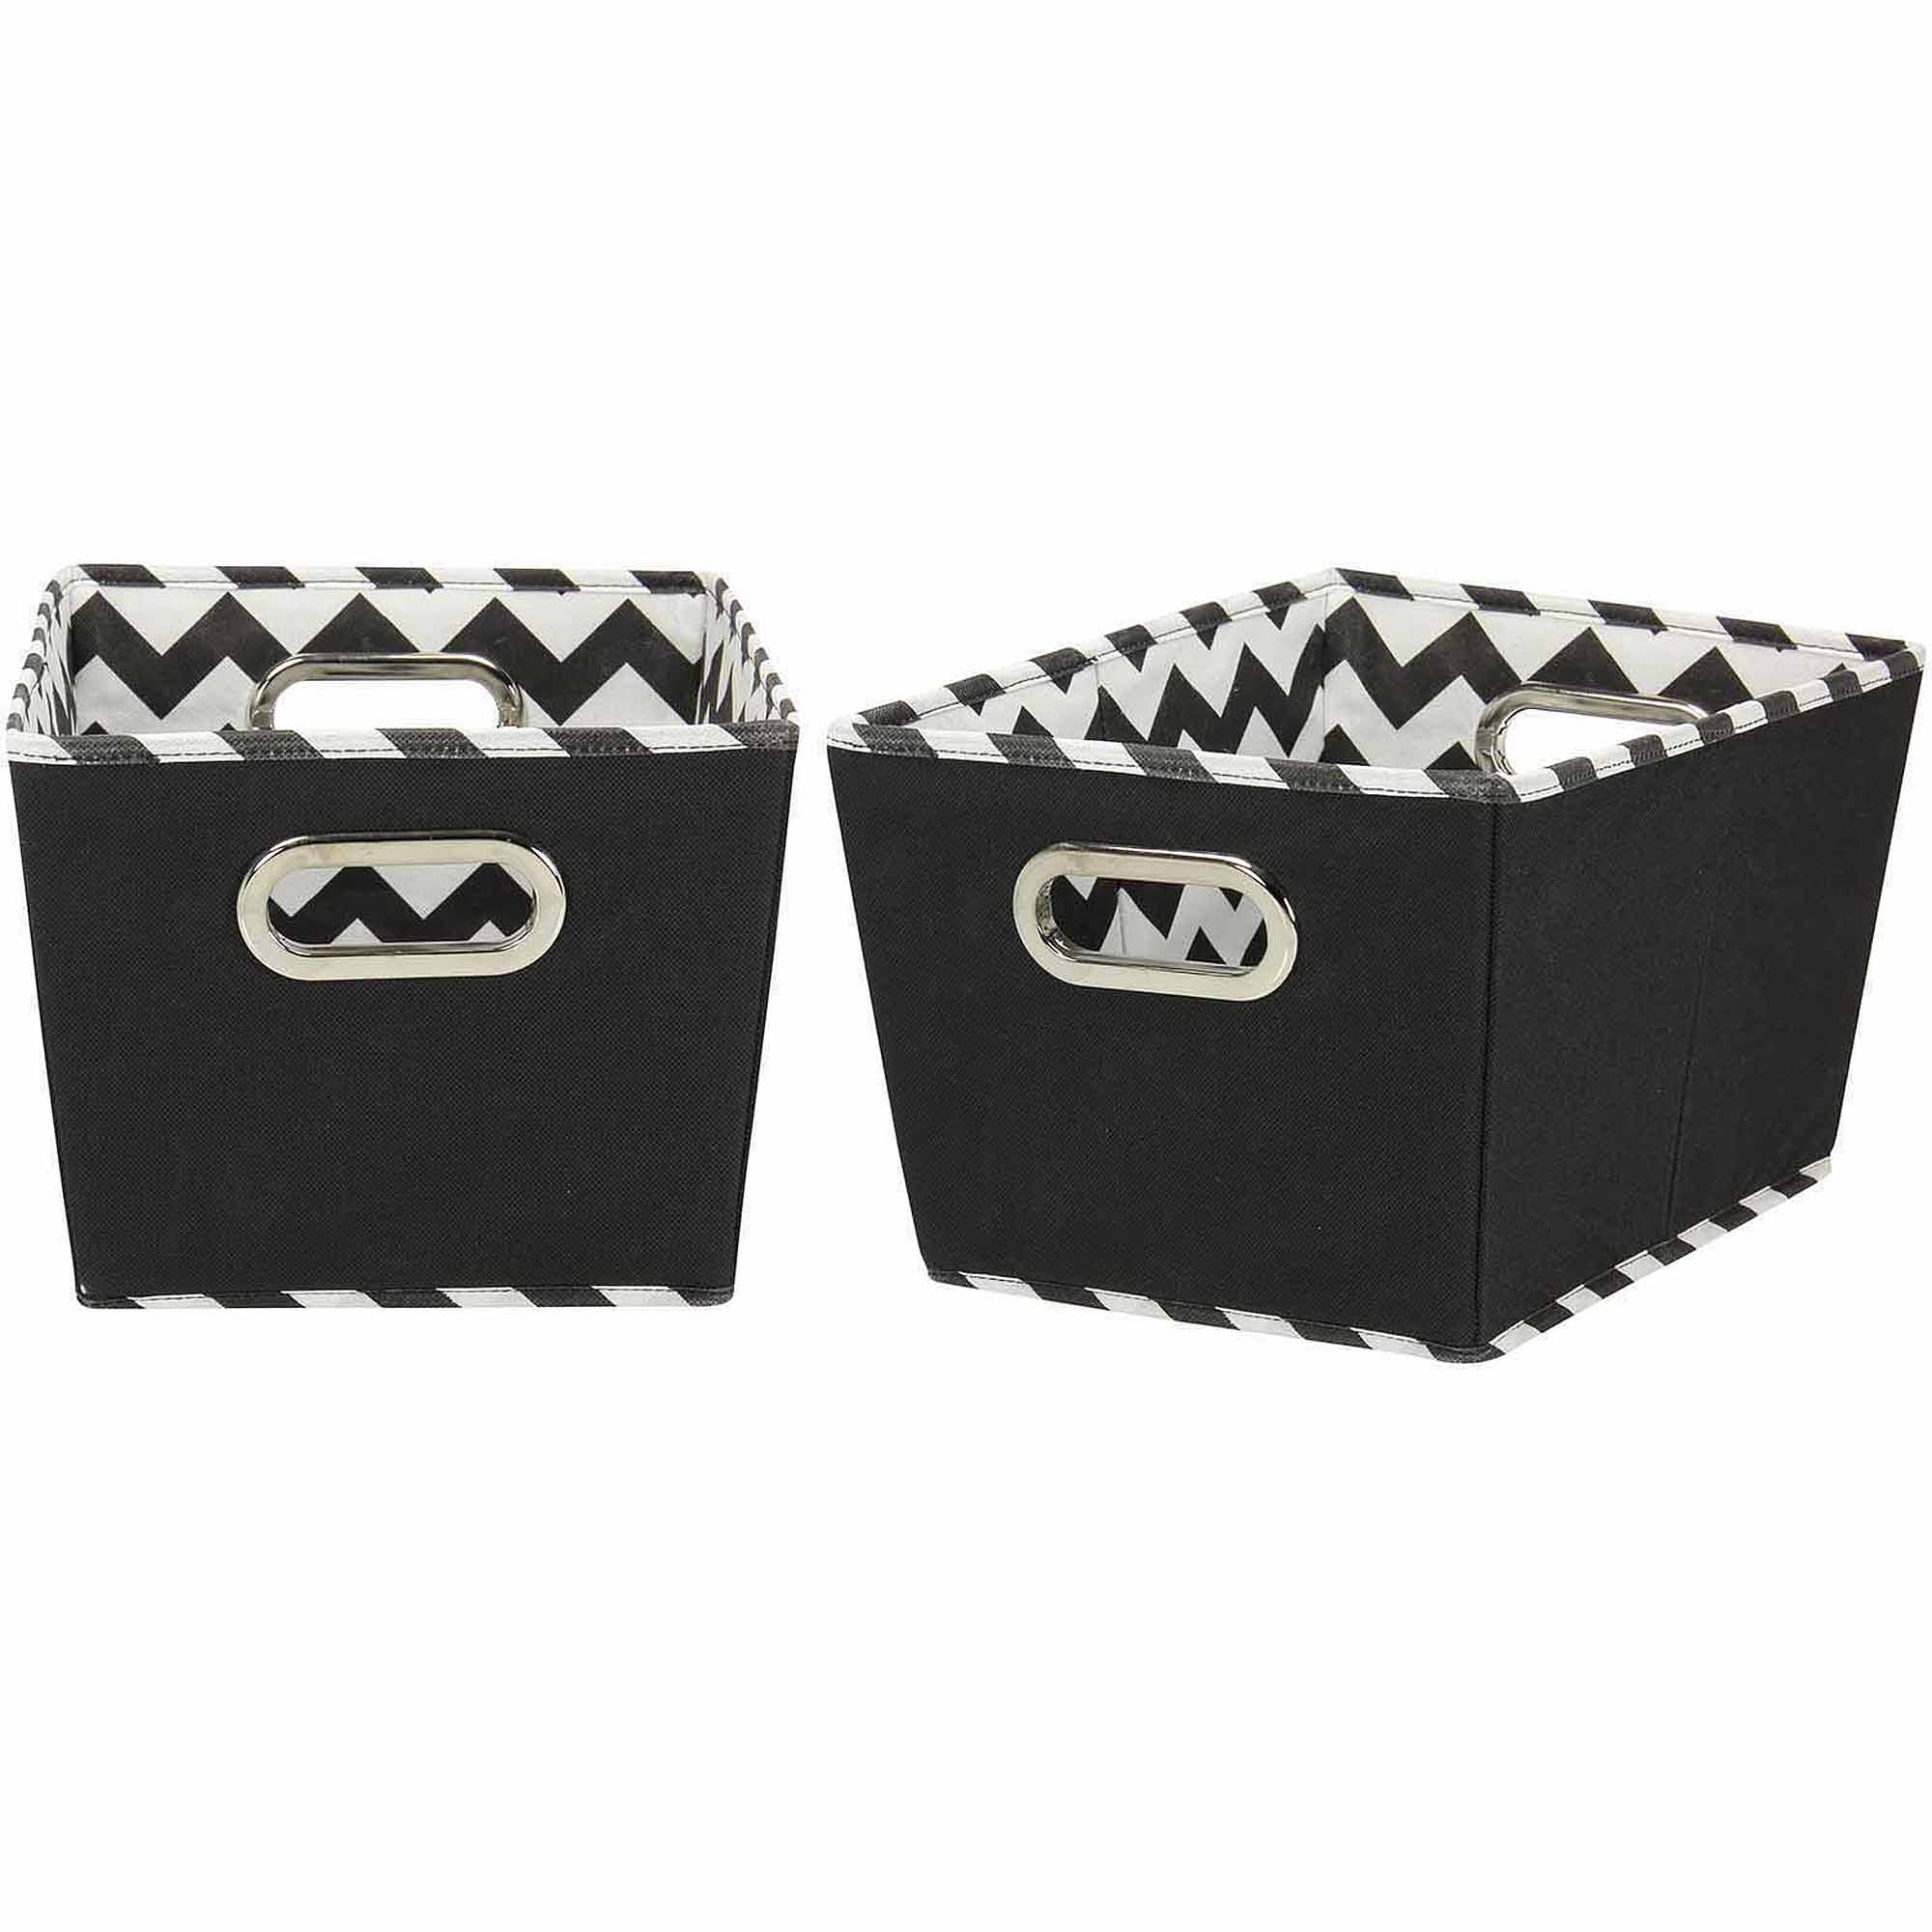 household essentials small decorative storage bins 2pk black and chevron walmartcom - Decorative Storage Bins